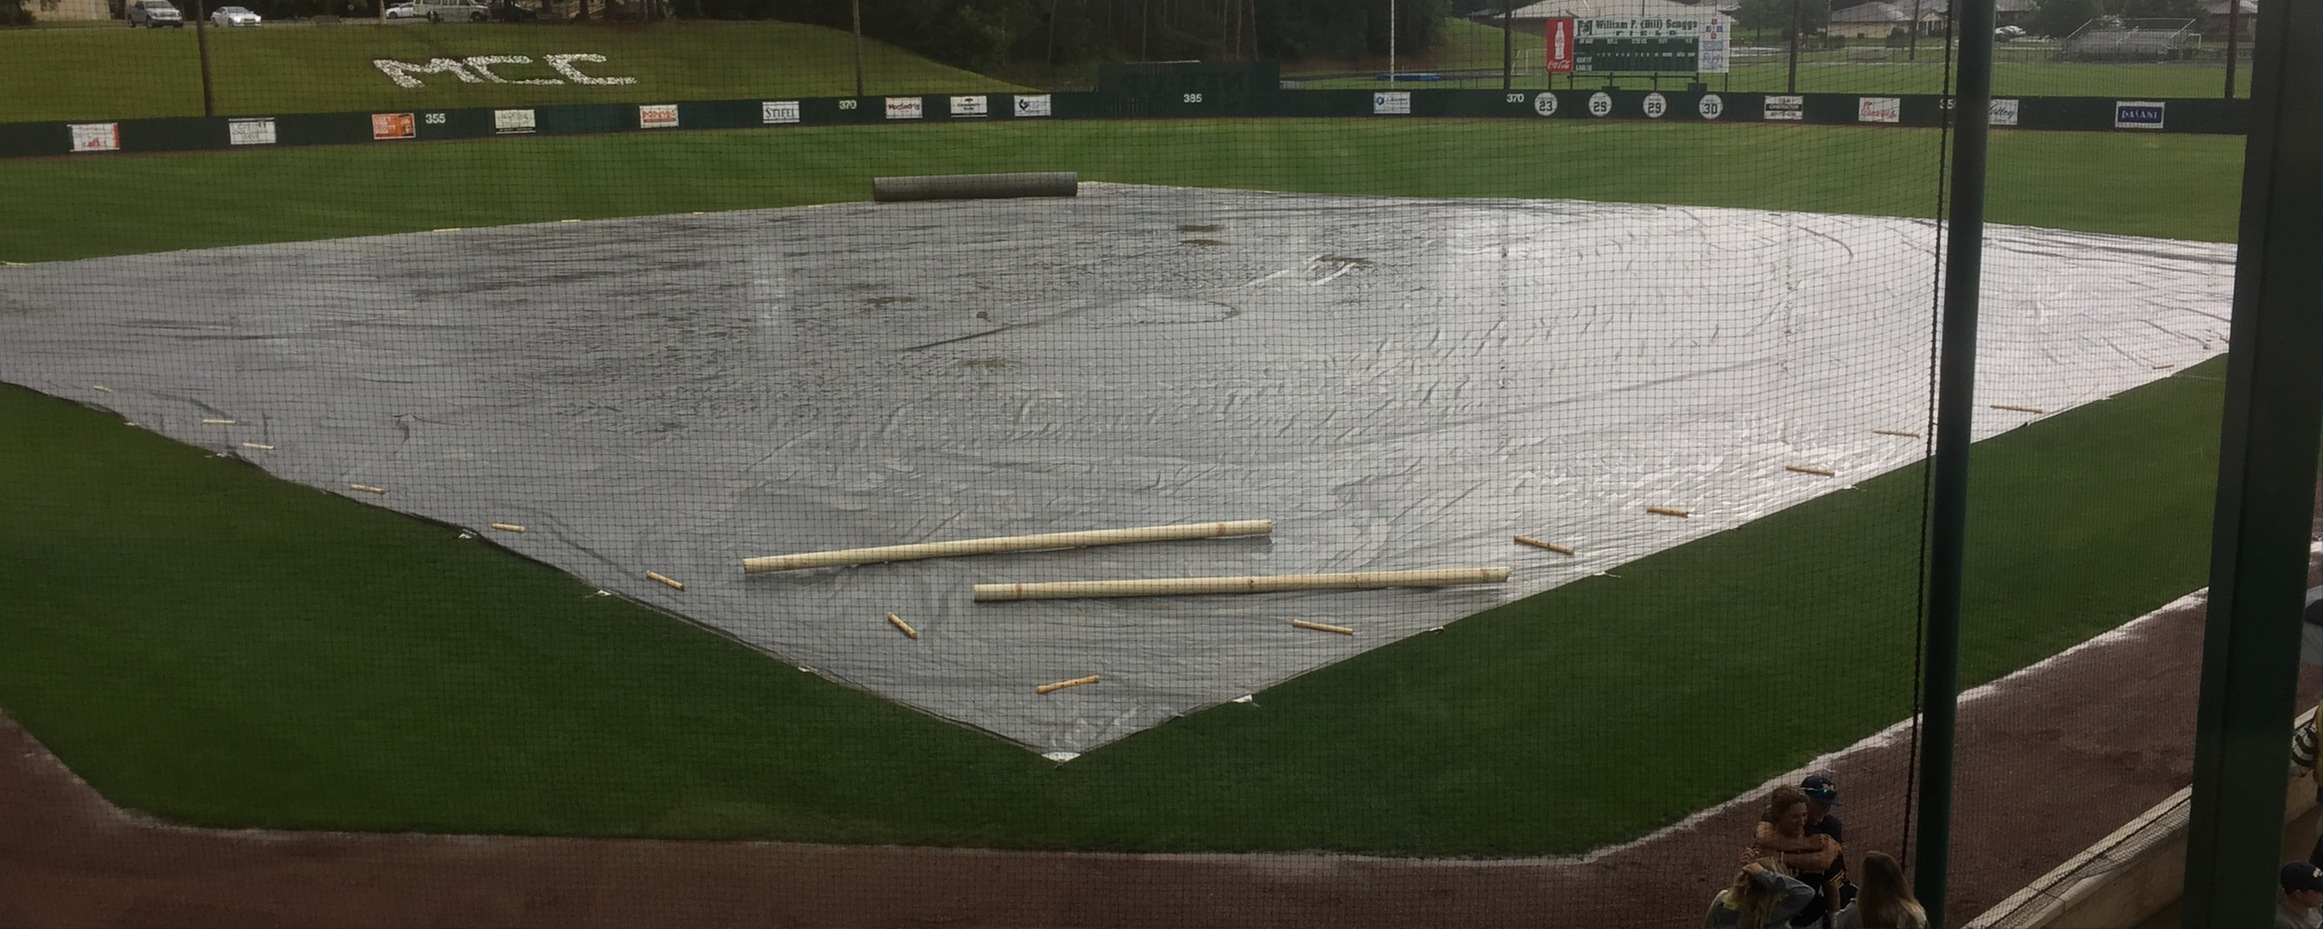 Baseball postponed until Sunday